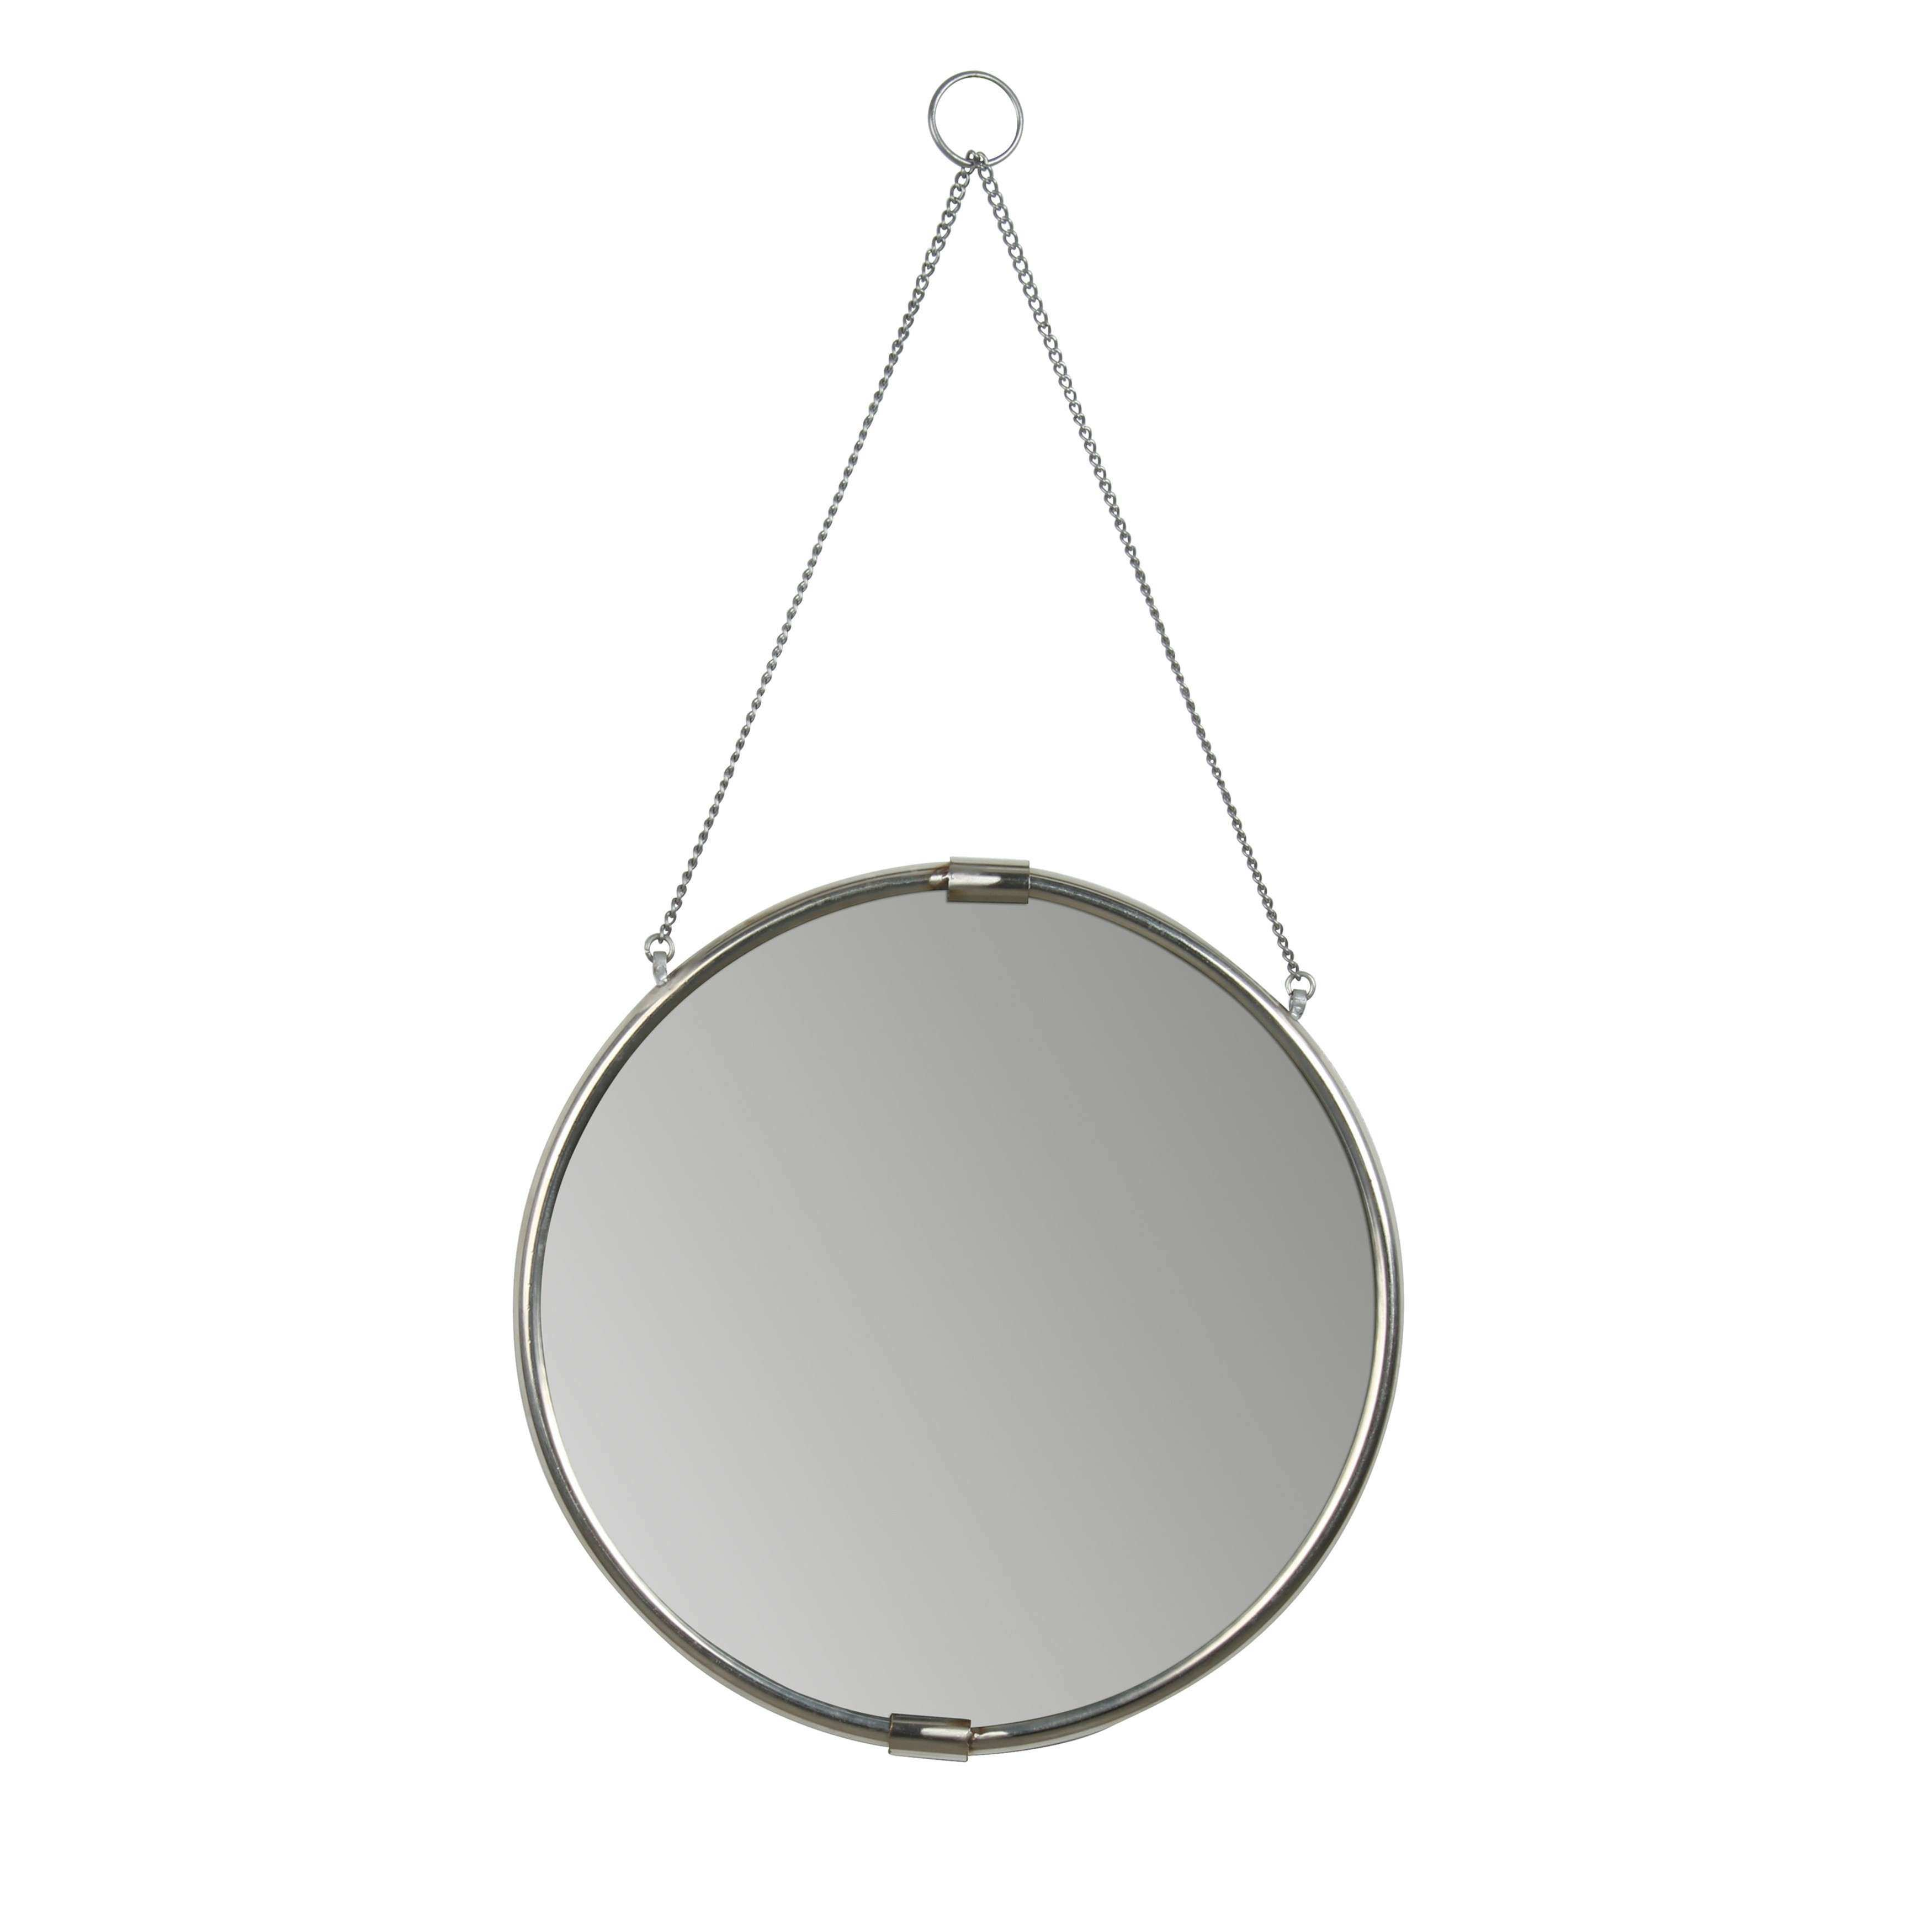 Kate and Laurel Brea Decorative Round Hanging Wall Mirror